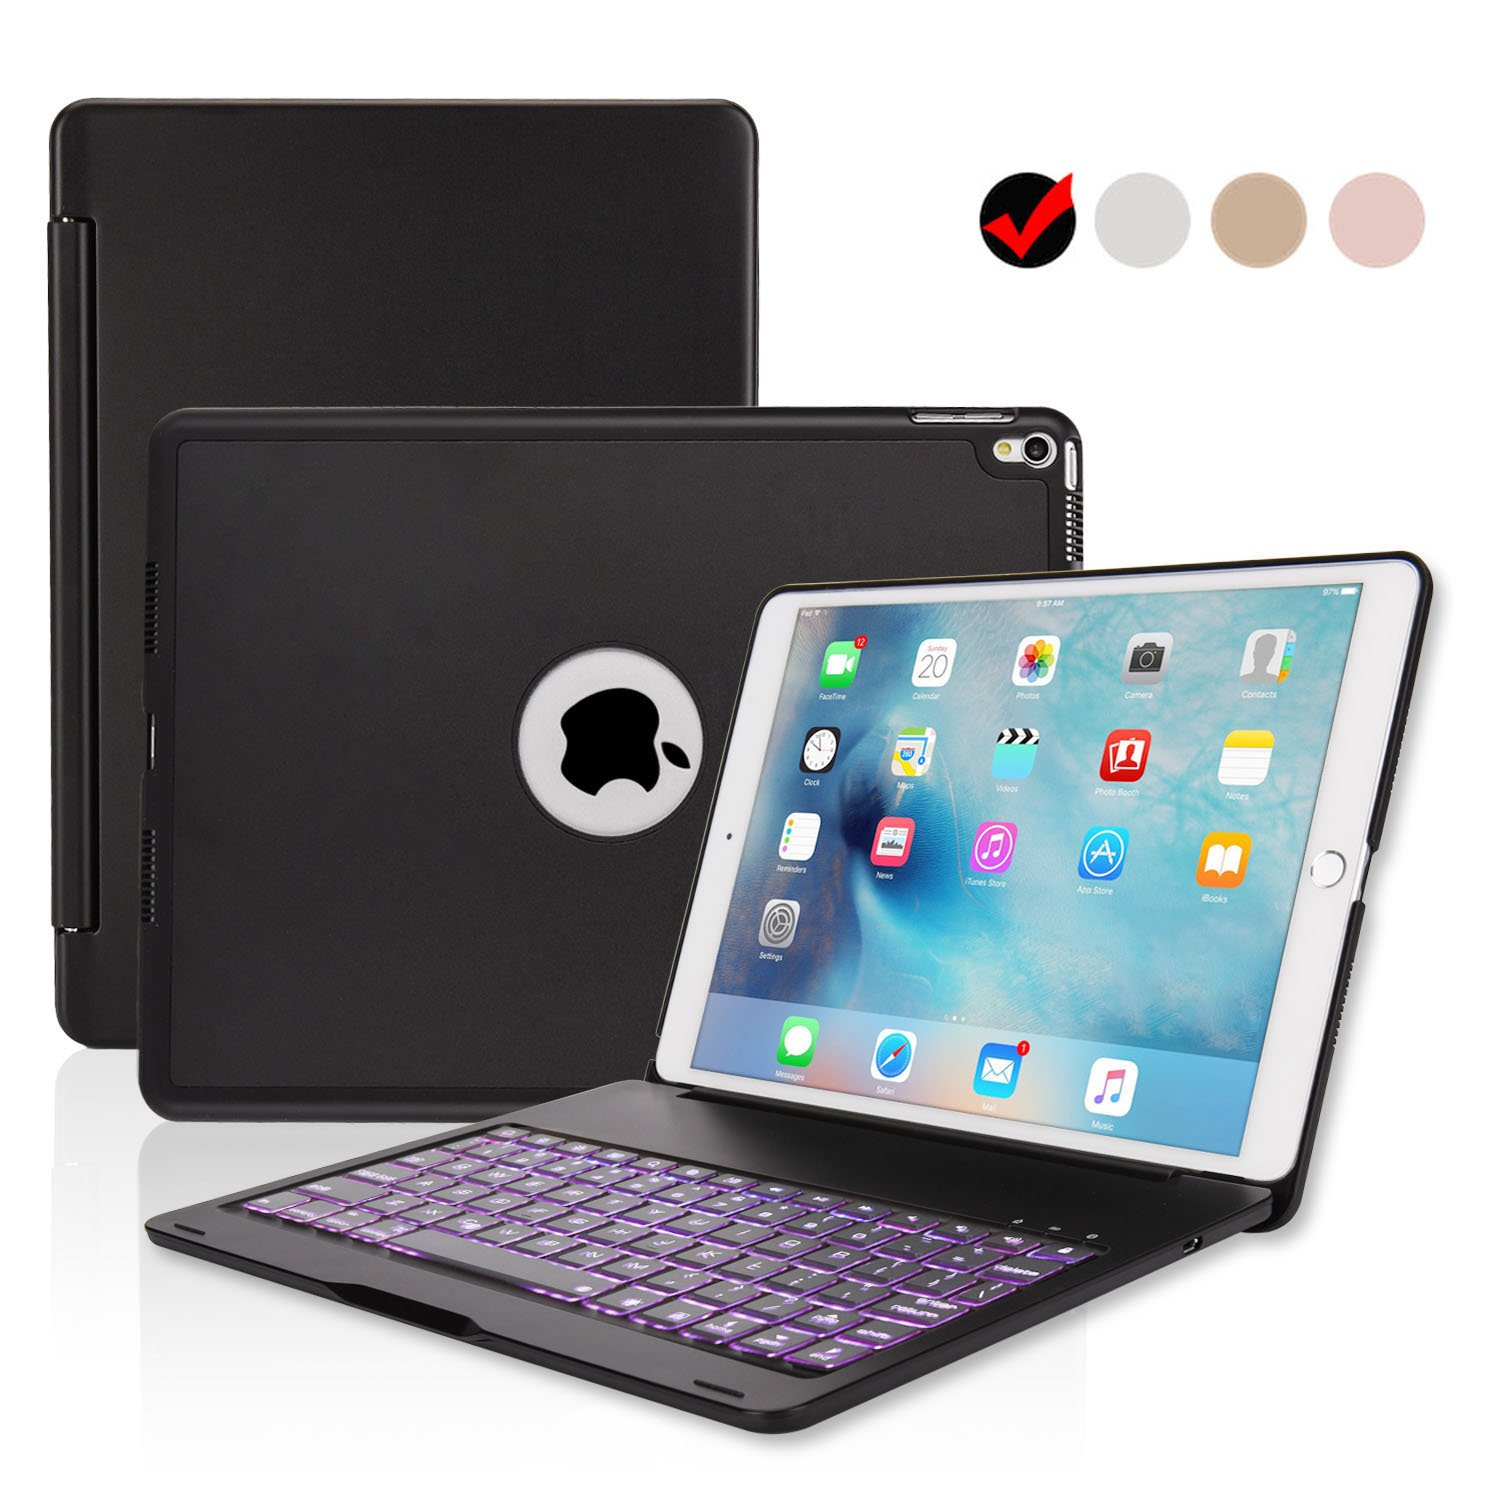 ipad Pro 10.5 Keyboard Case, ONHI Wireless Bluetooth Keyboard Case Aluminum shell Smart Folio Case with 7 Colors Back-lit, Auto Sleep / Wake, Silent Typing, the Screen can be Rotated 135 ° (Black) by ONHI